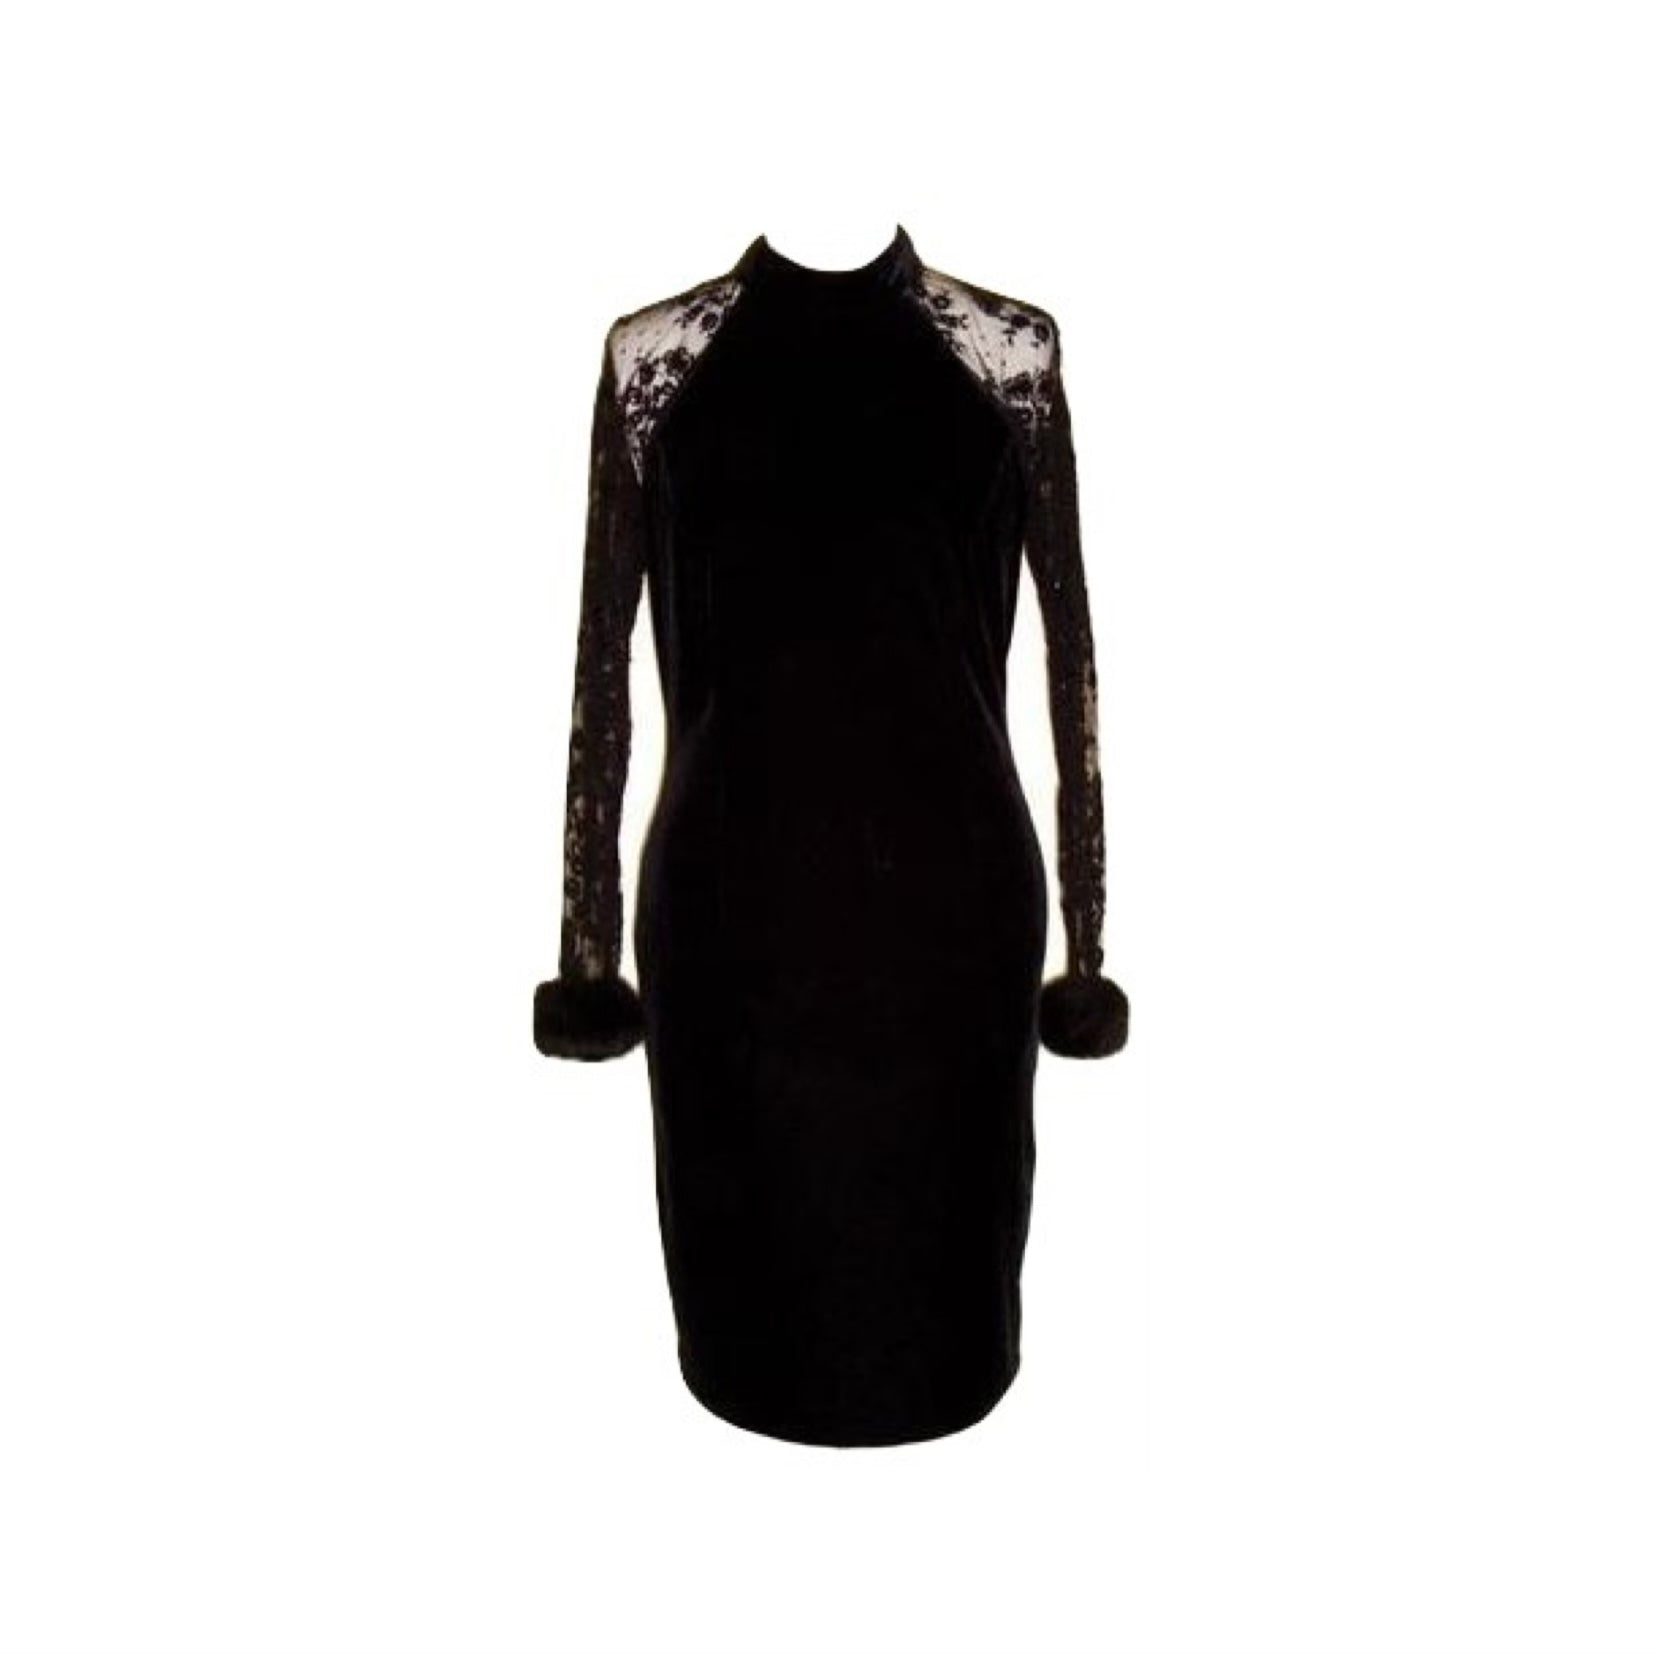 Vintage Black Velvet Lace Sequin Fur Cuffs Dress